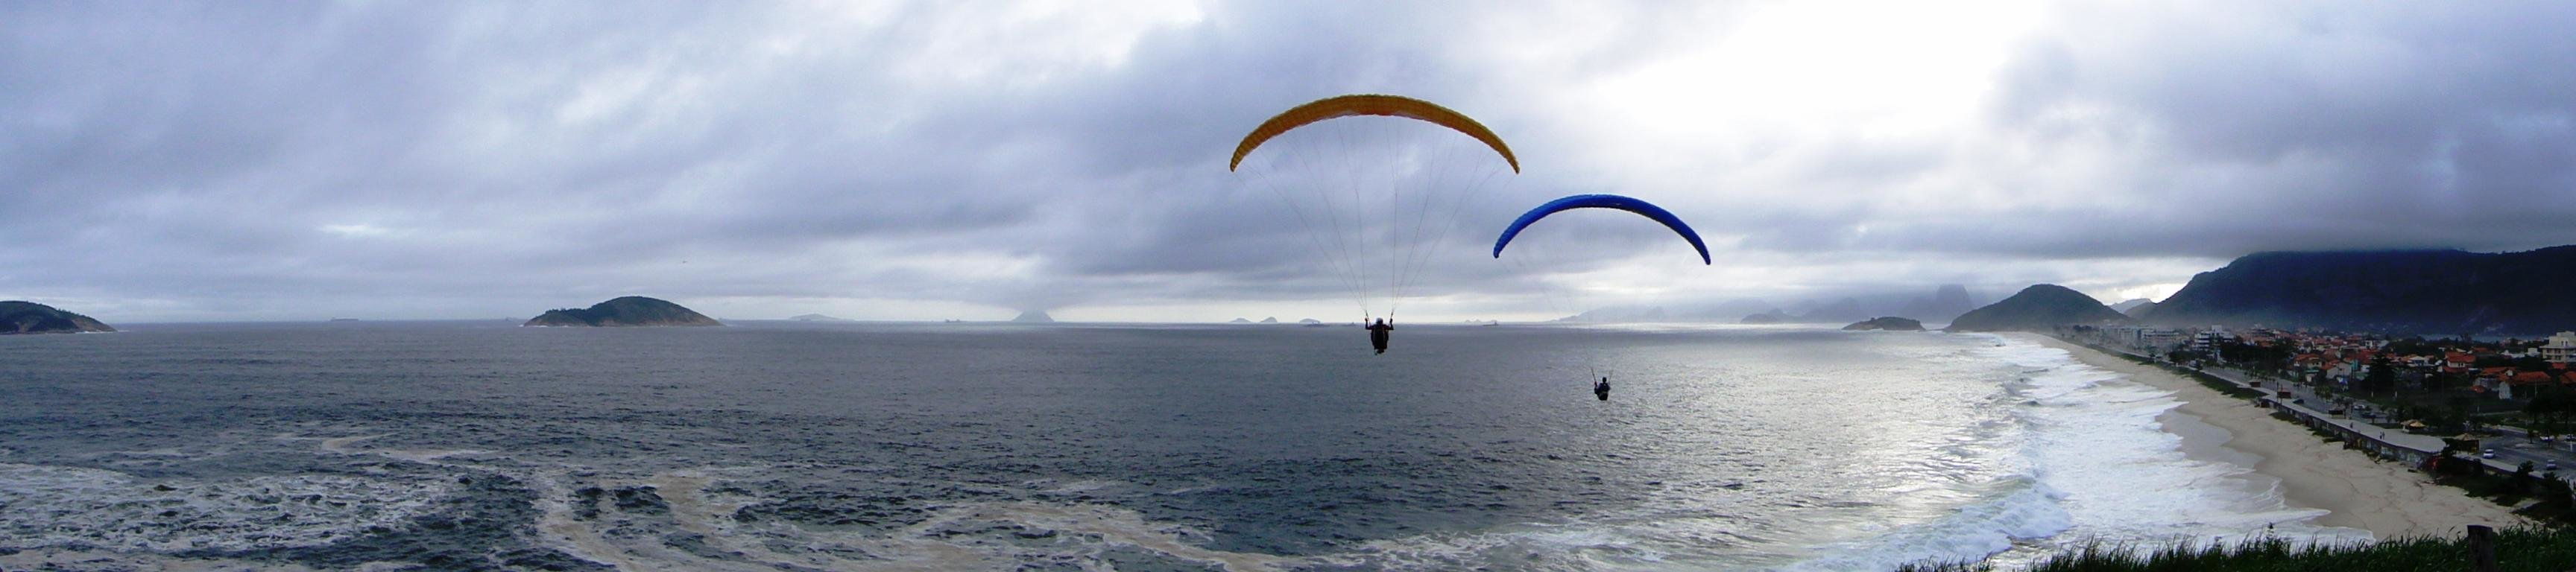 Download triple monitor 3456x768 Paragliding computer background ID:31113 for free